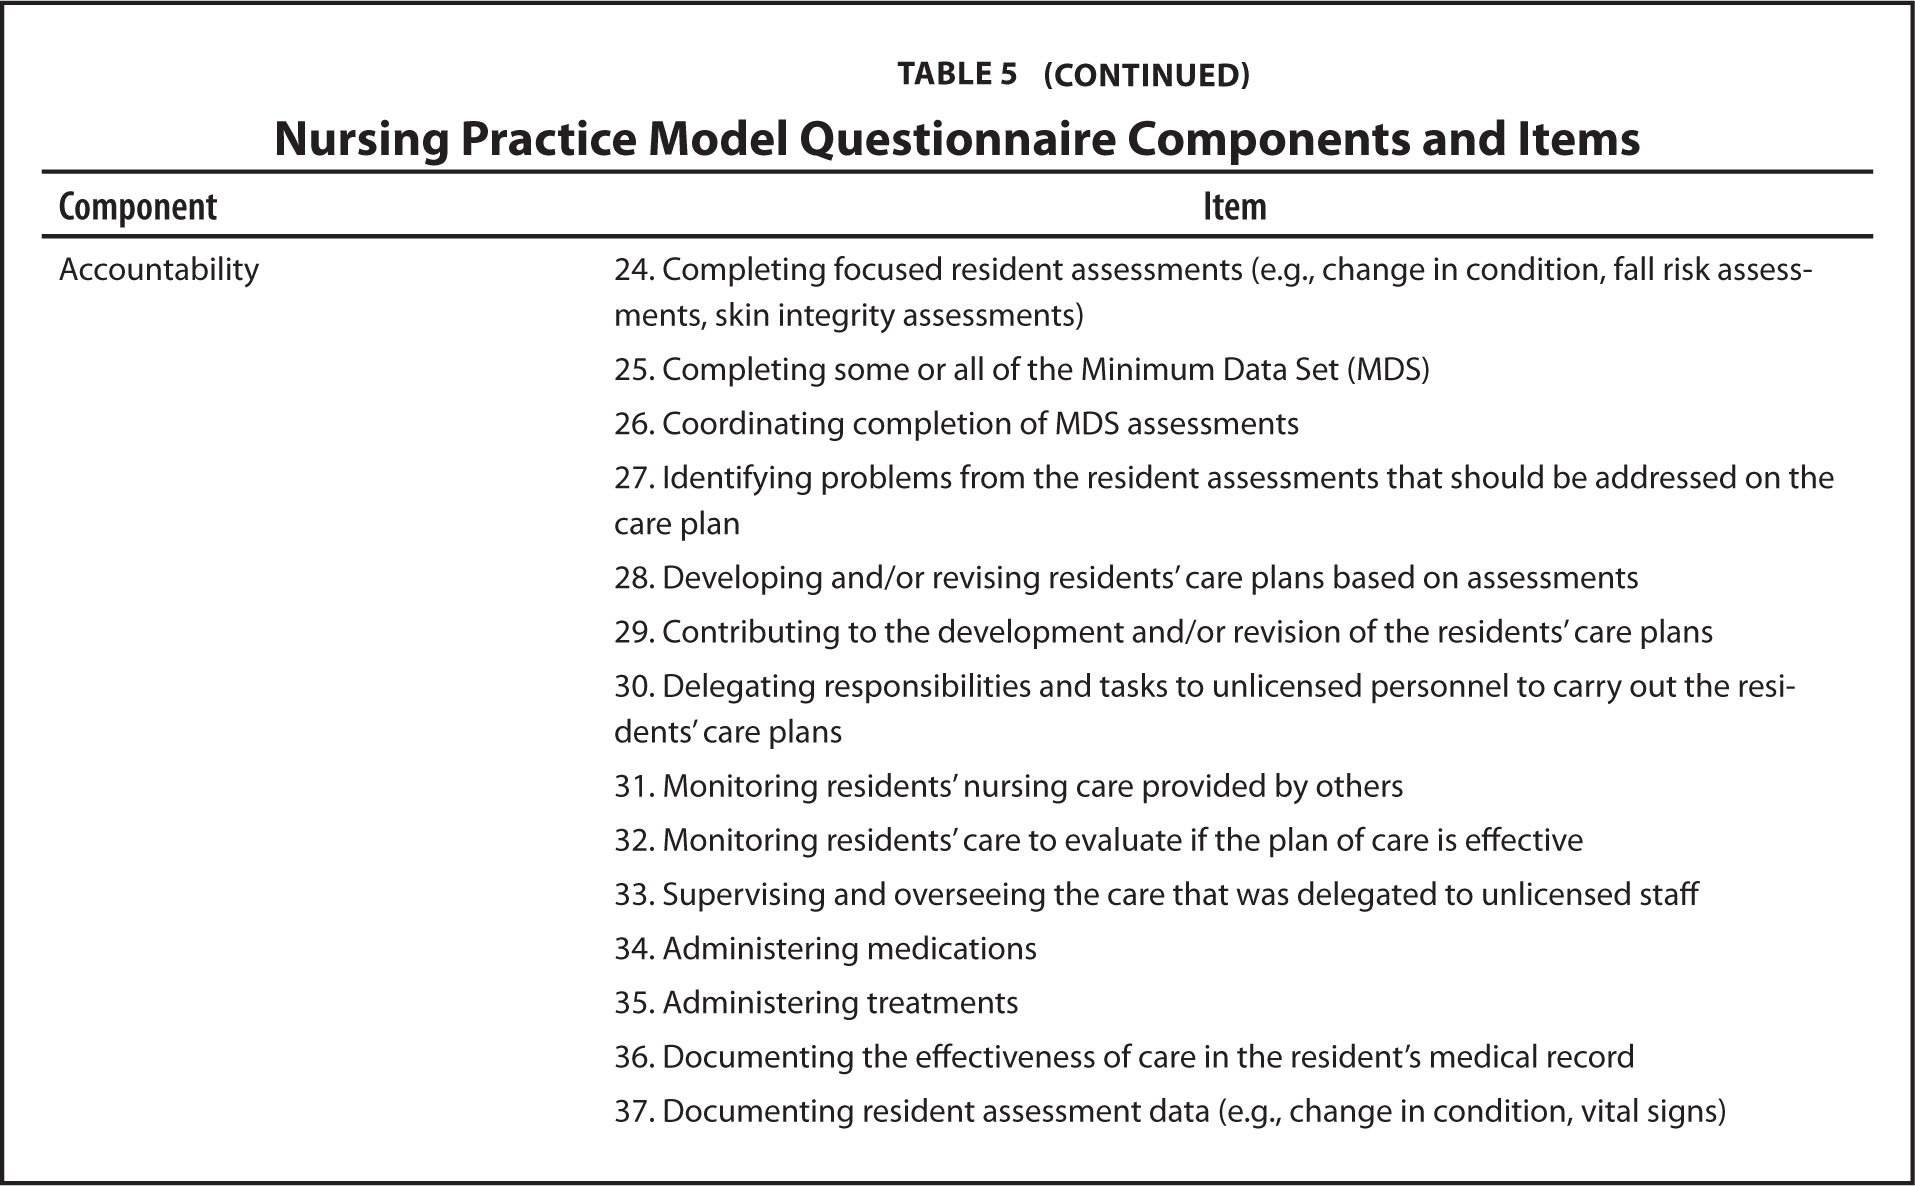 Nursing Practice Model Questionnaire Components and Items